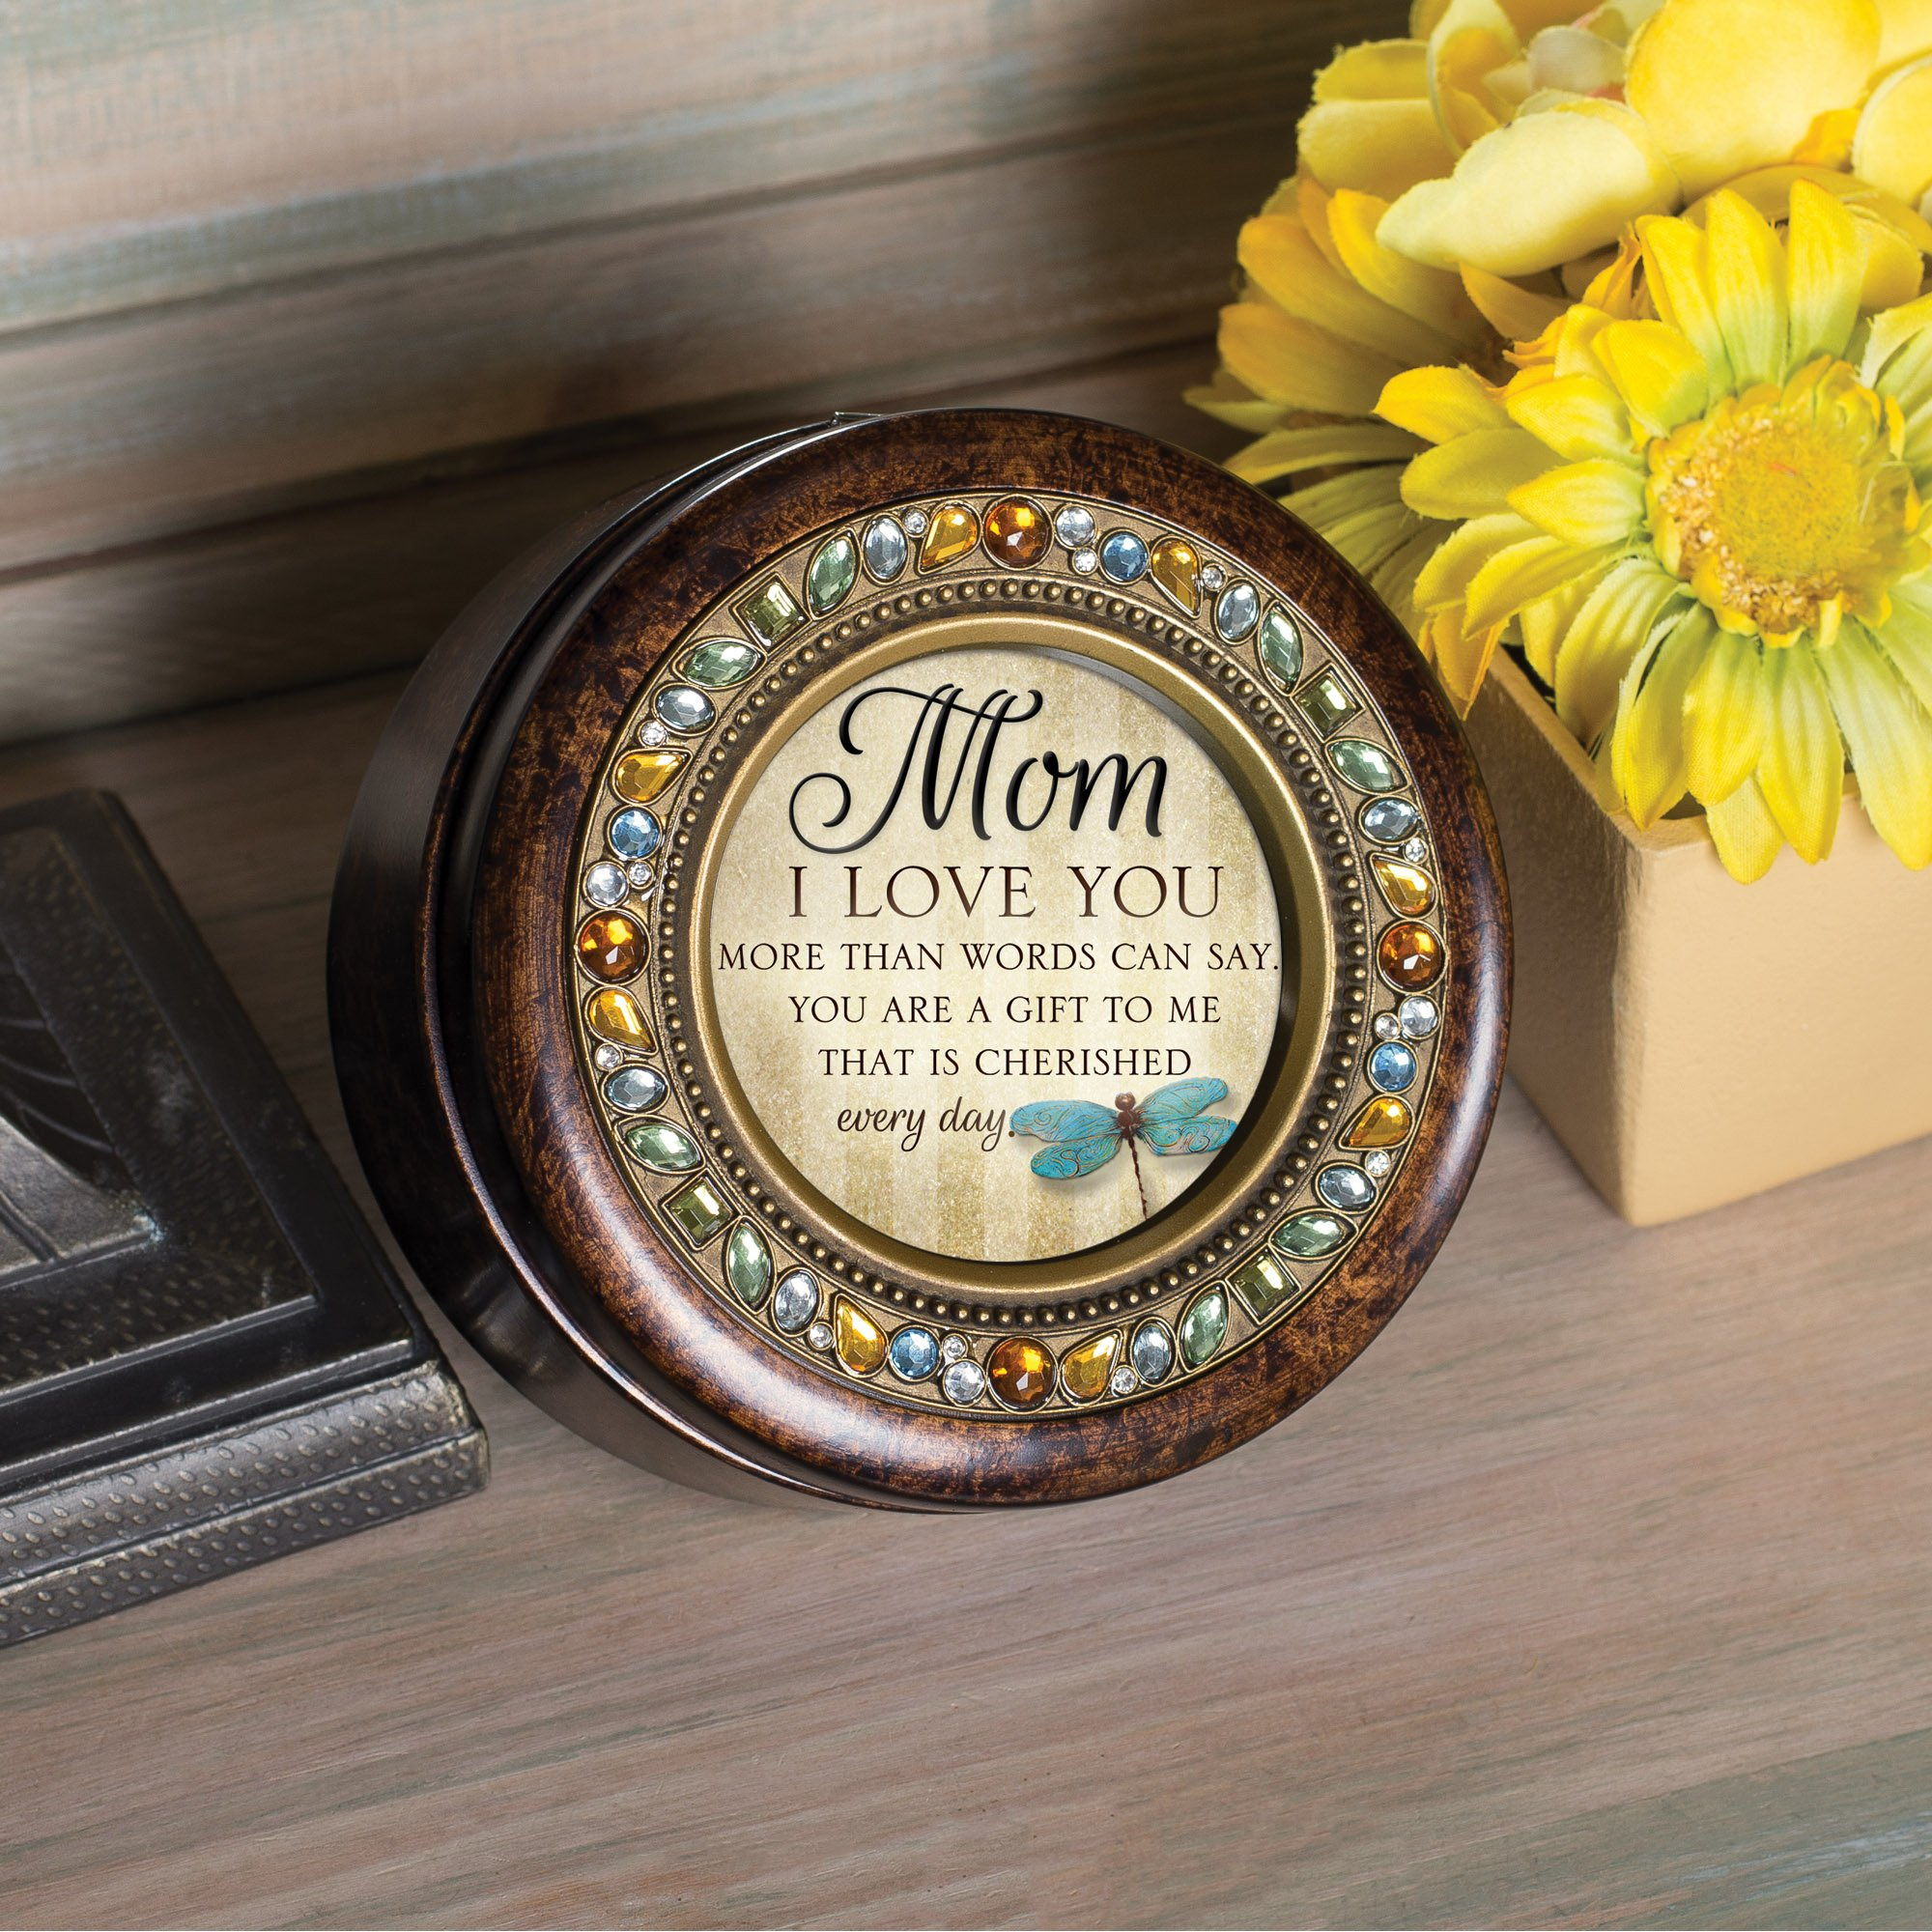 Cottage Garden Mom I Love You Every Day Jeweled Amber Earth Toned Round Music Box Plays Wind Beneath My Wings by Cottage Garden (Image #3)